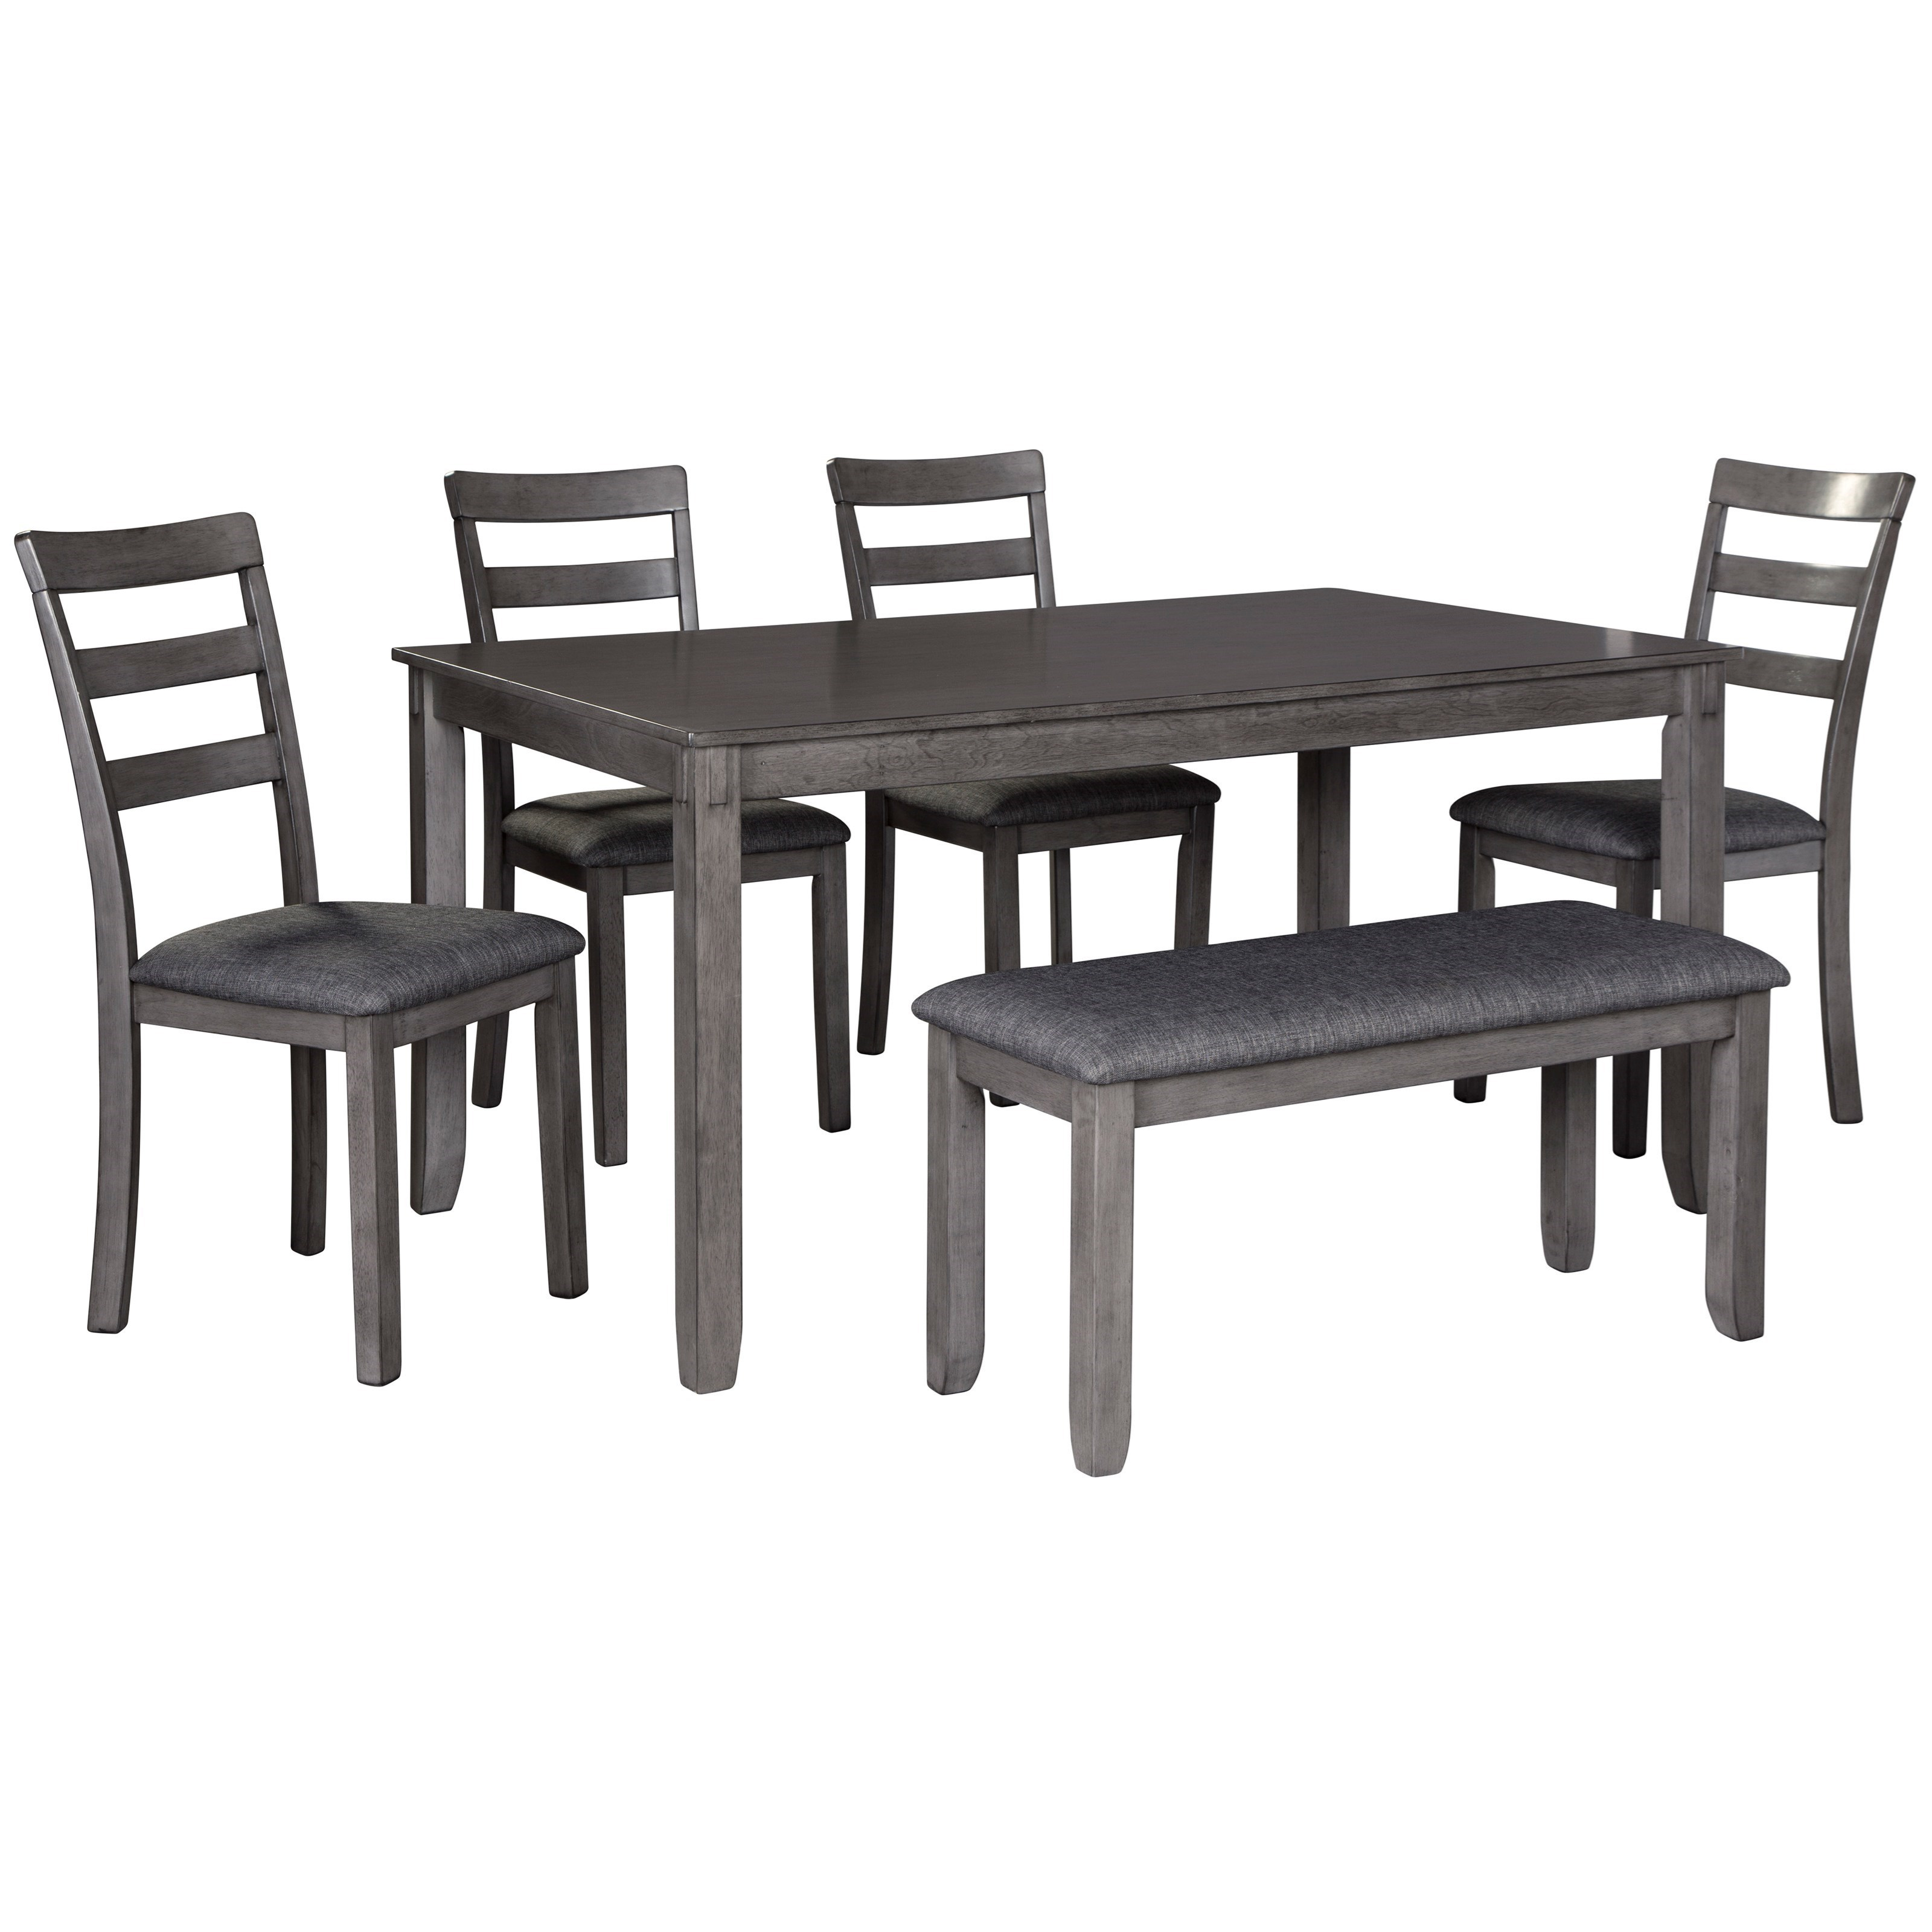 Bridson 6-Piece Rectangular Dining Room Table Set by Ashley (Signature Design) at Johnny Janosik